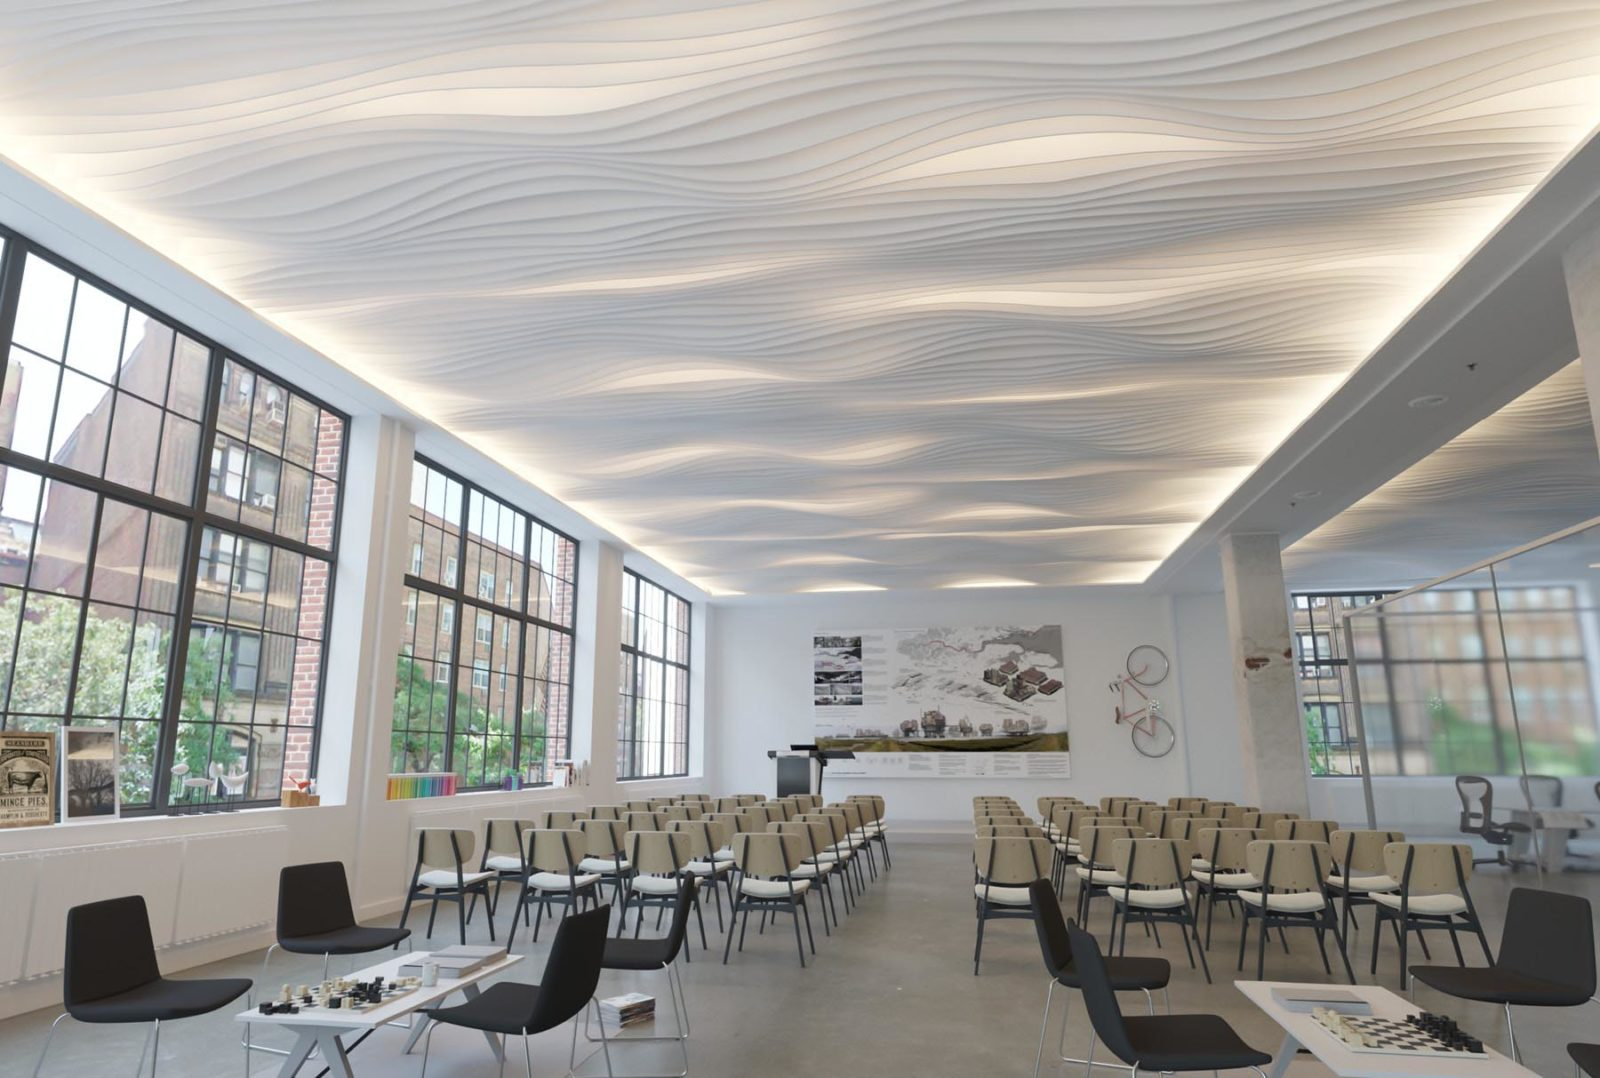 Atmosphera® Standard Drift above lecture space.